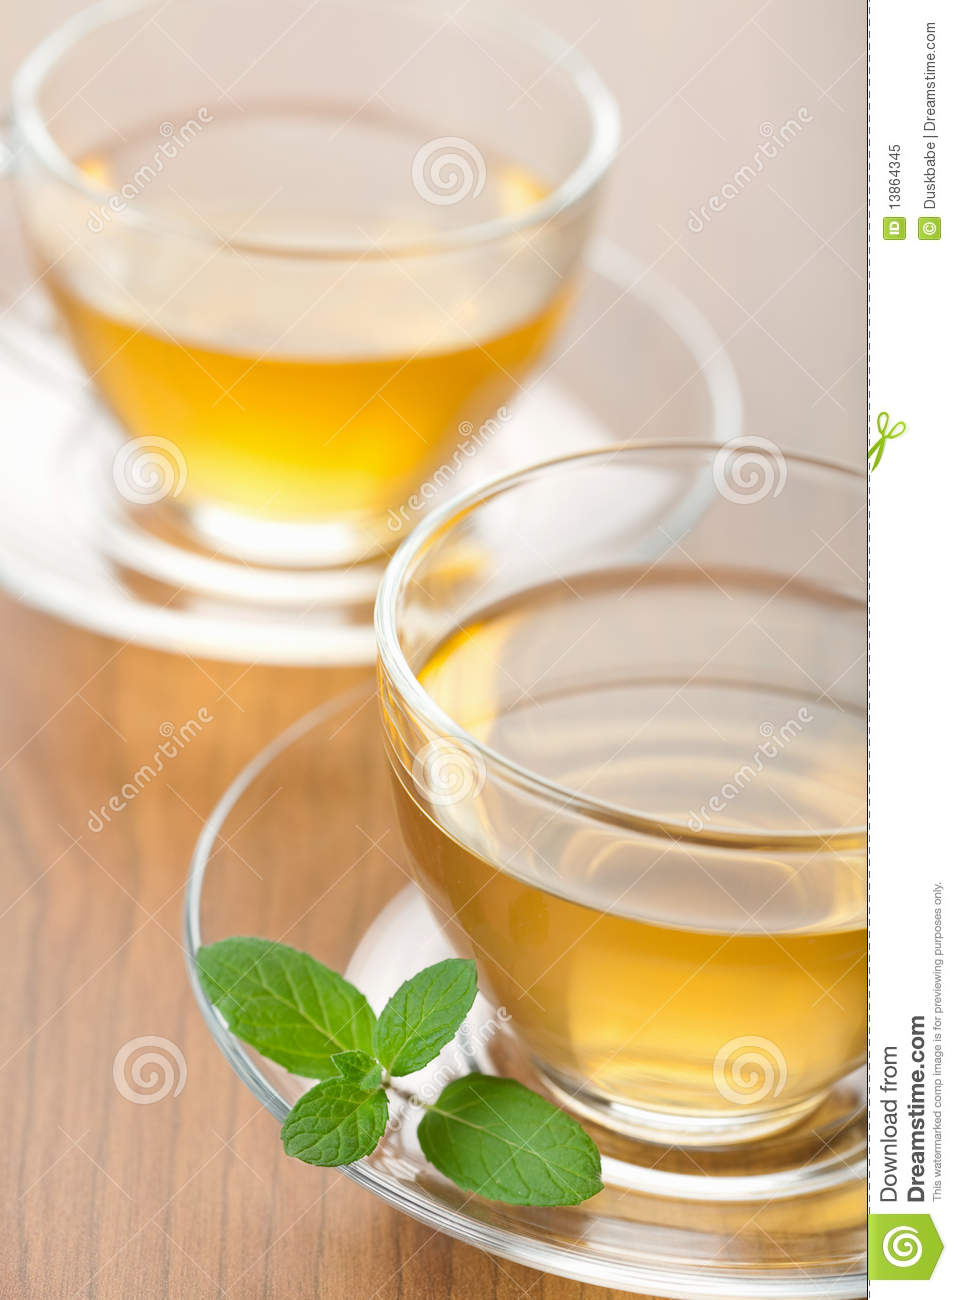 how to make mint tea with fresh mint leaves